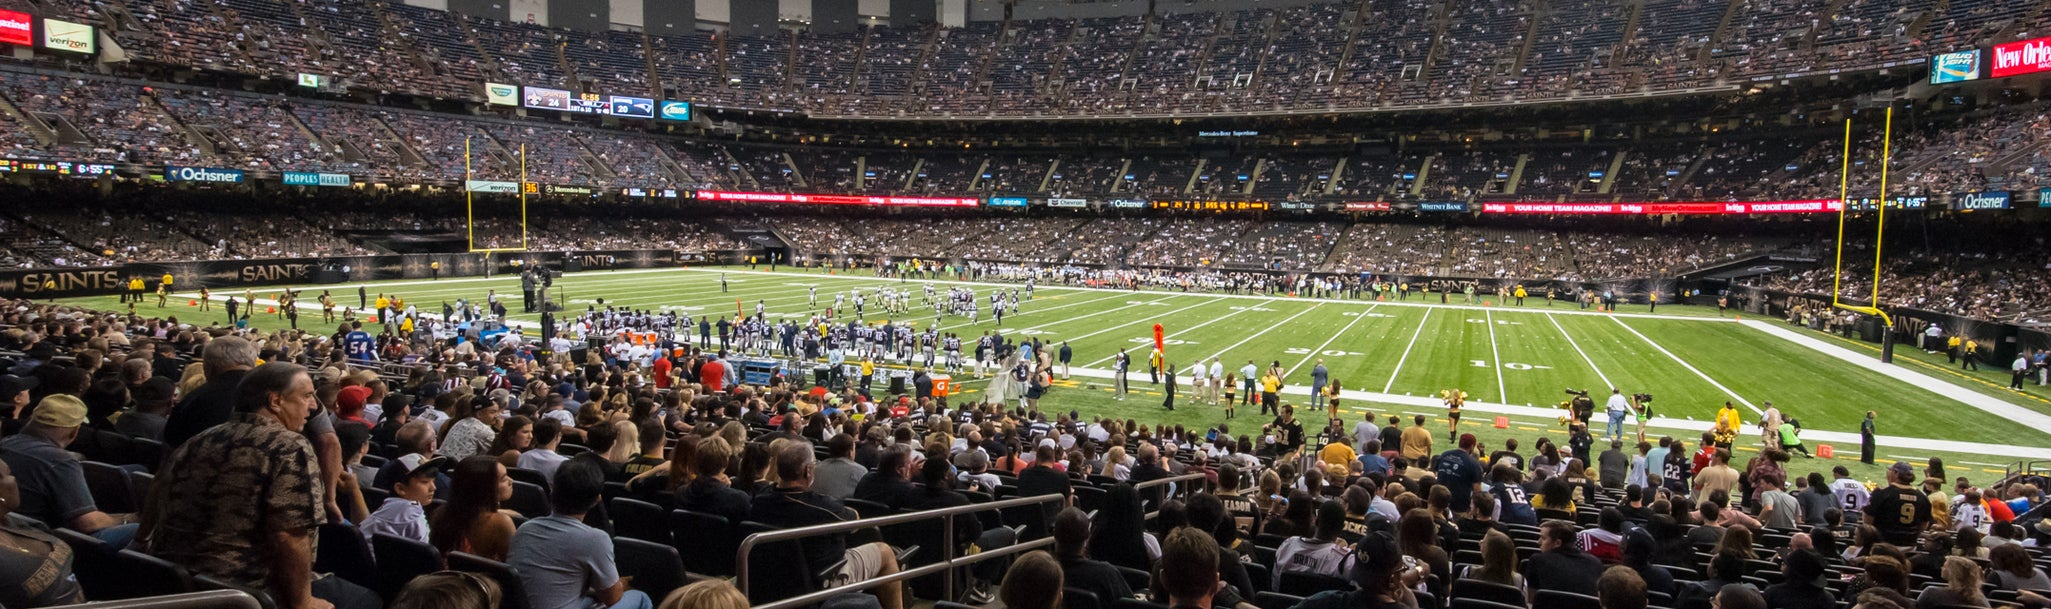 Seat view from Plaza Club Sideline